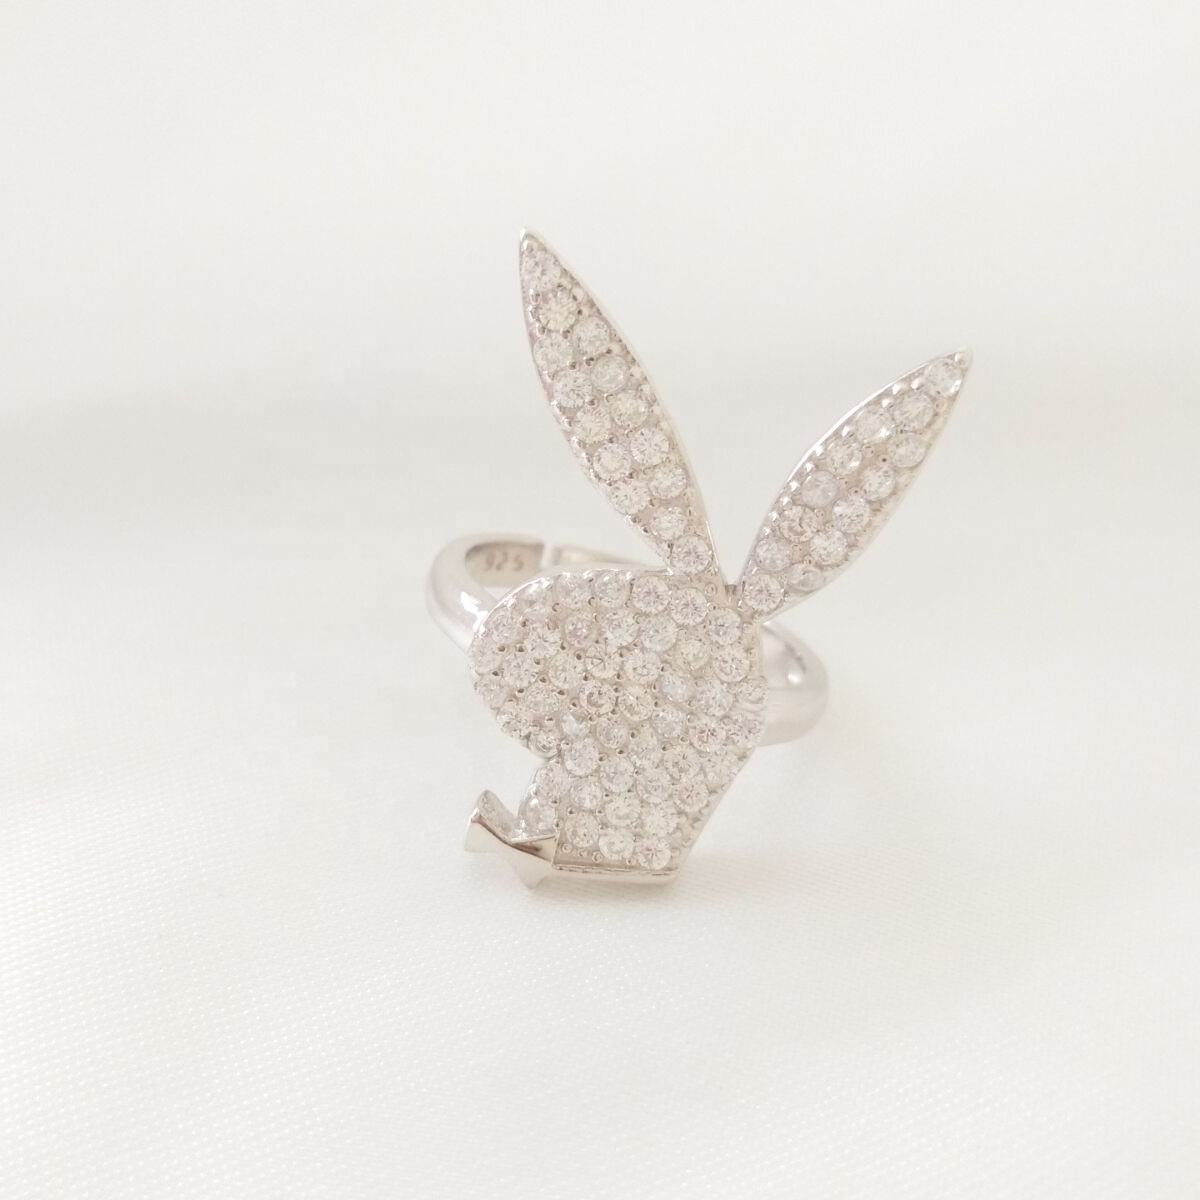 Fashion Jewelry 925 Sterling Silver Adjustable Pave Diamond CZ Animal Jewelry Bunny Rabbit Ring Women